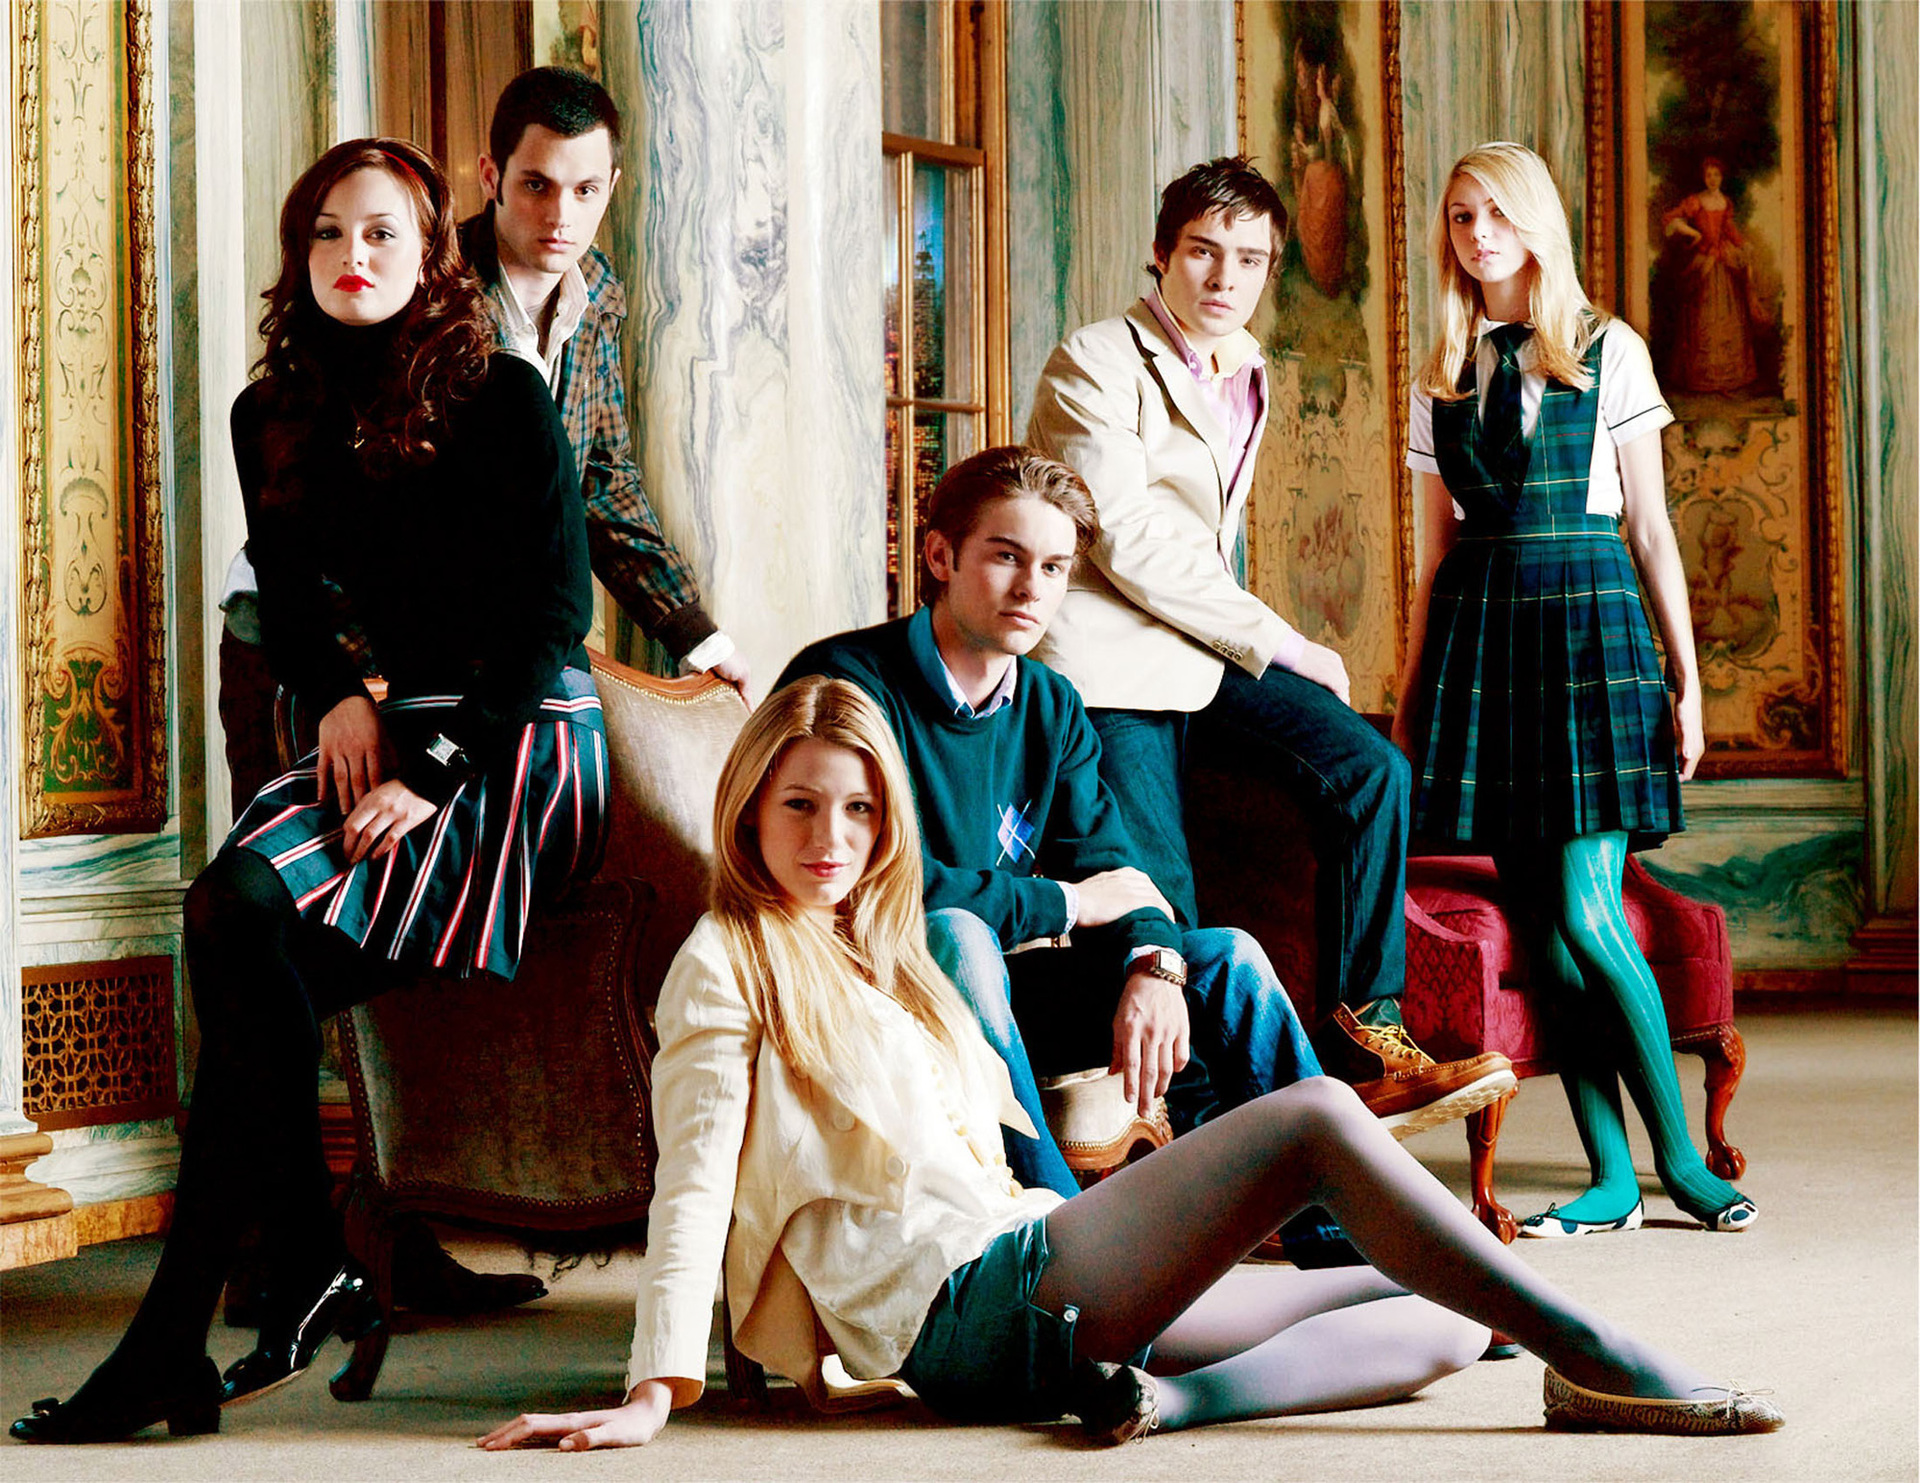 Gossip girl season 1 for free